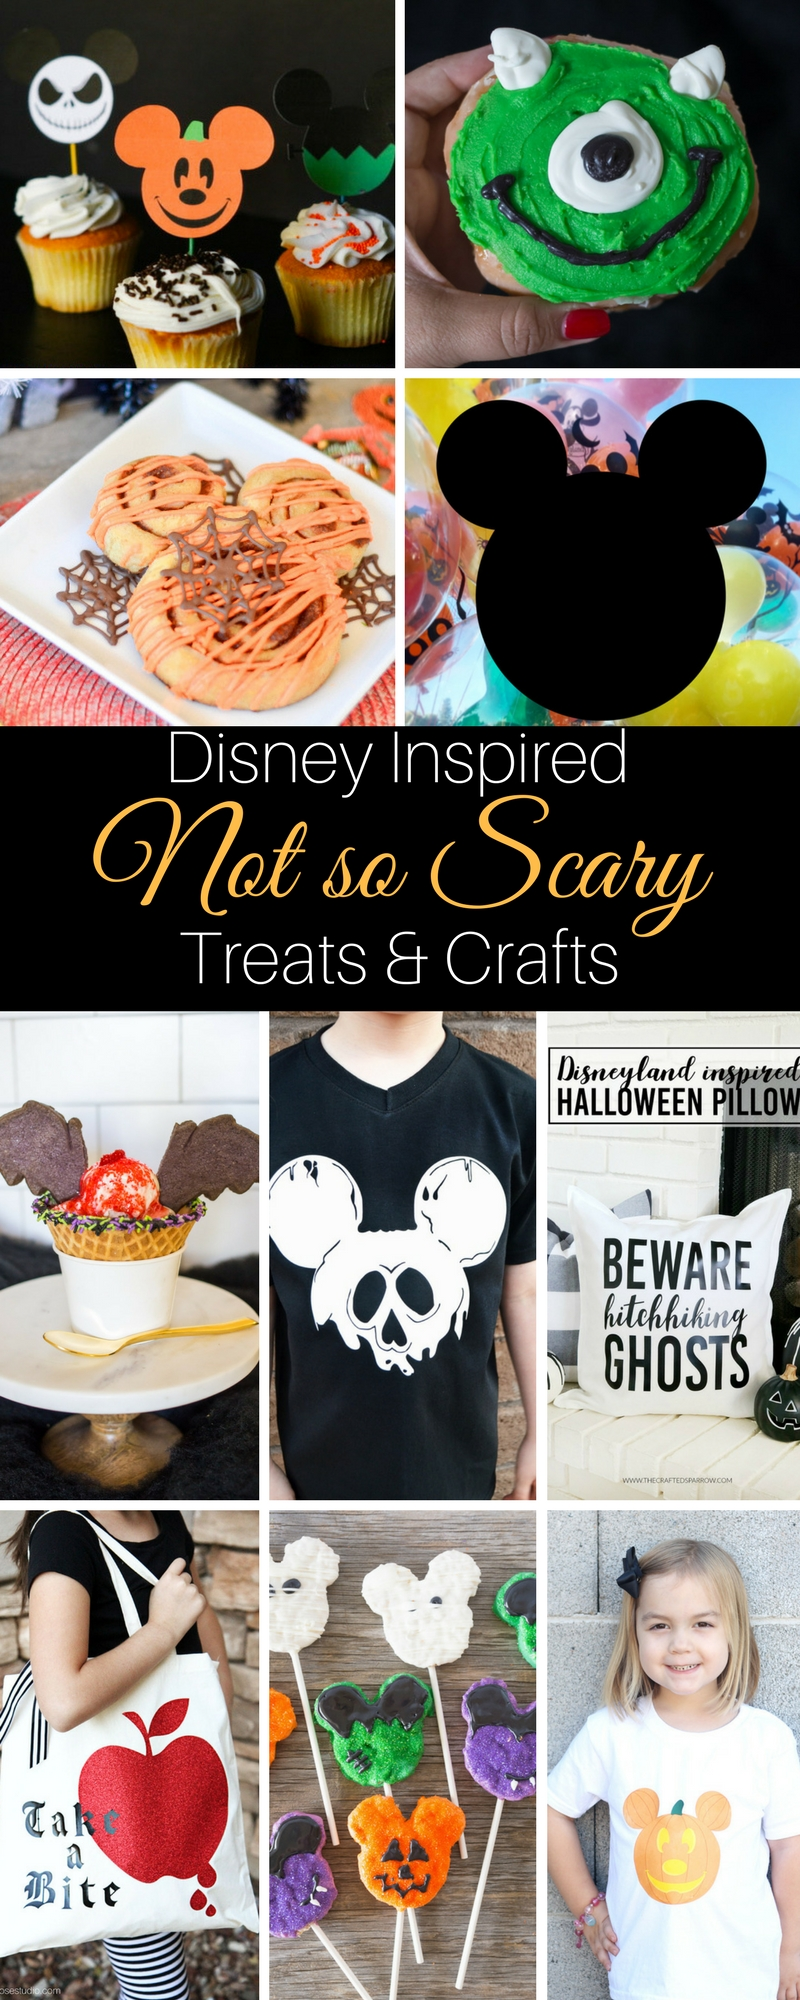 Disney not so scary treats and crafts